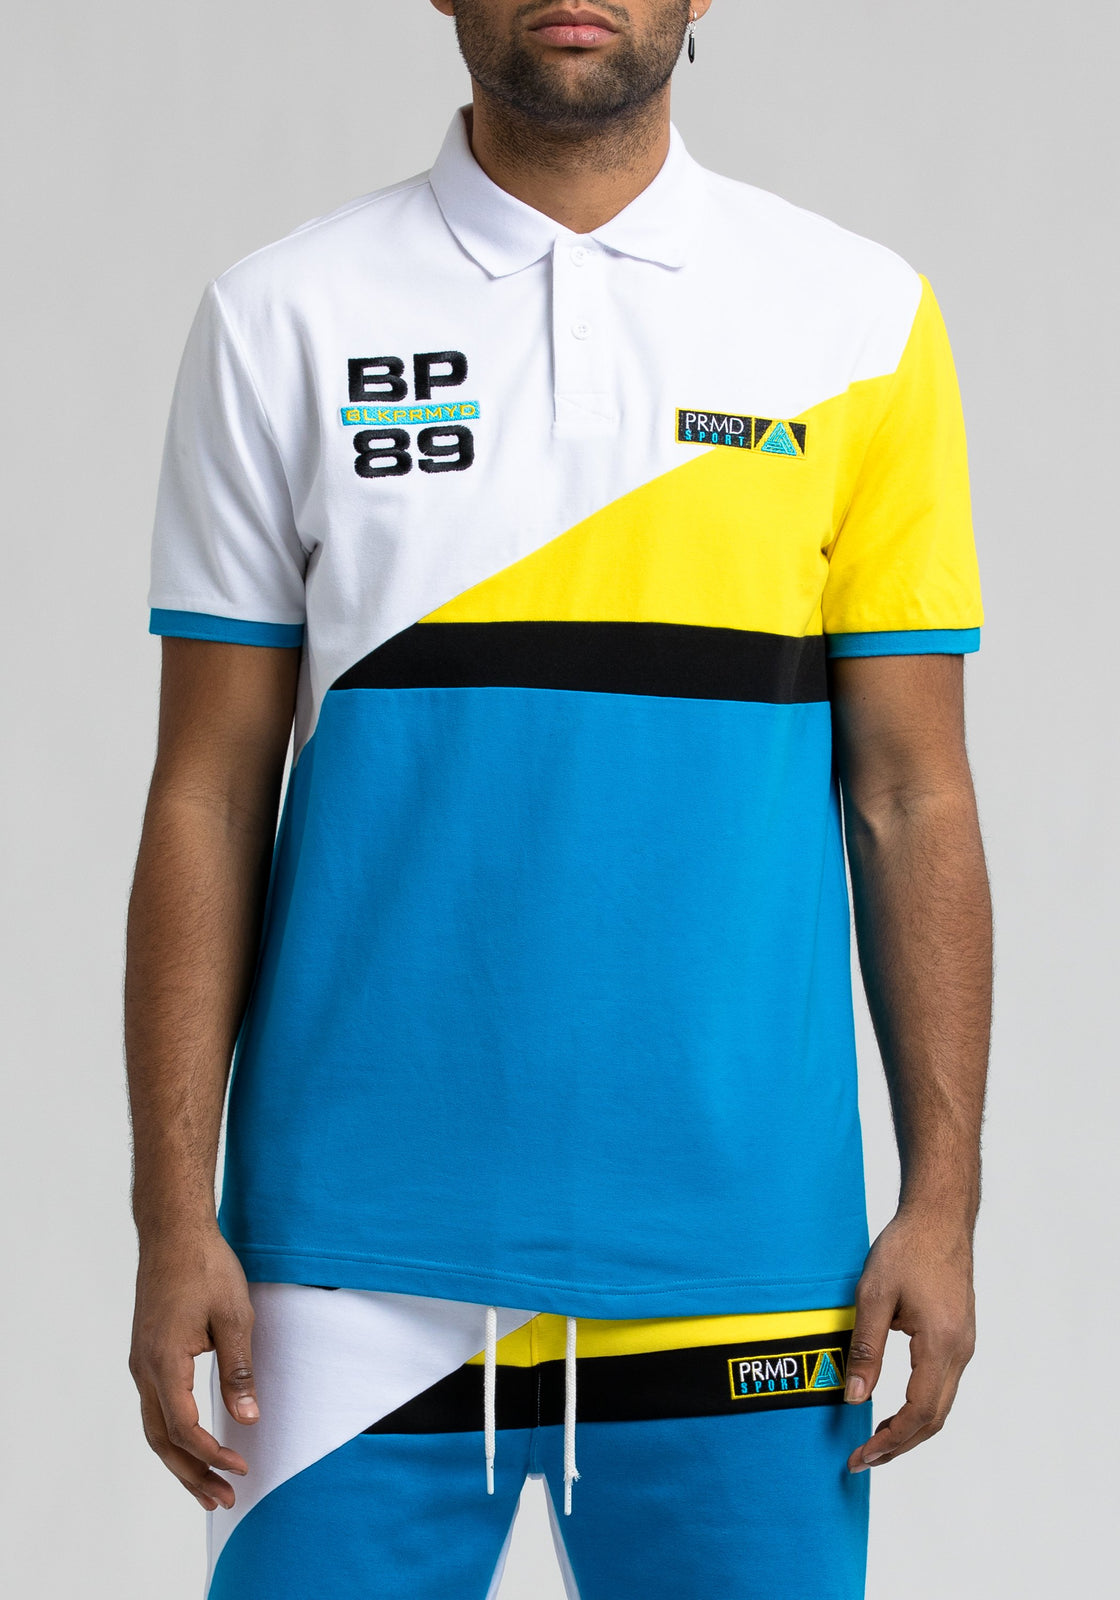 Bp 89 Colorblock Polo - Color: White